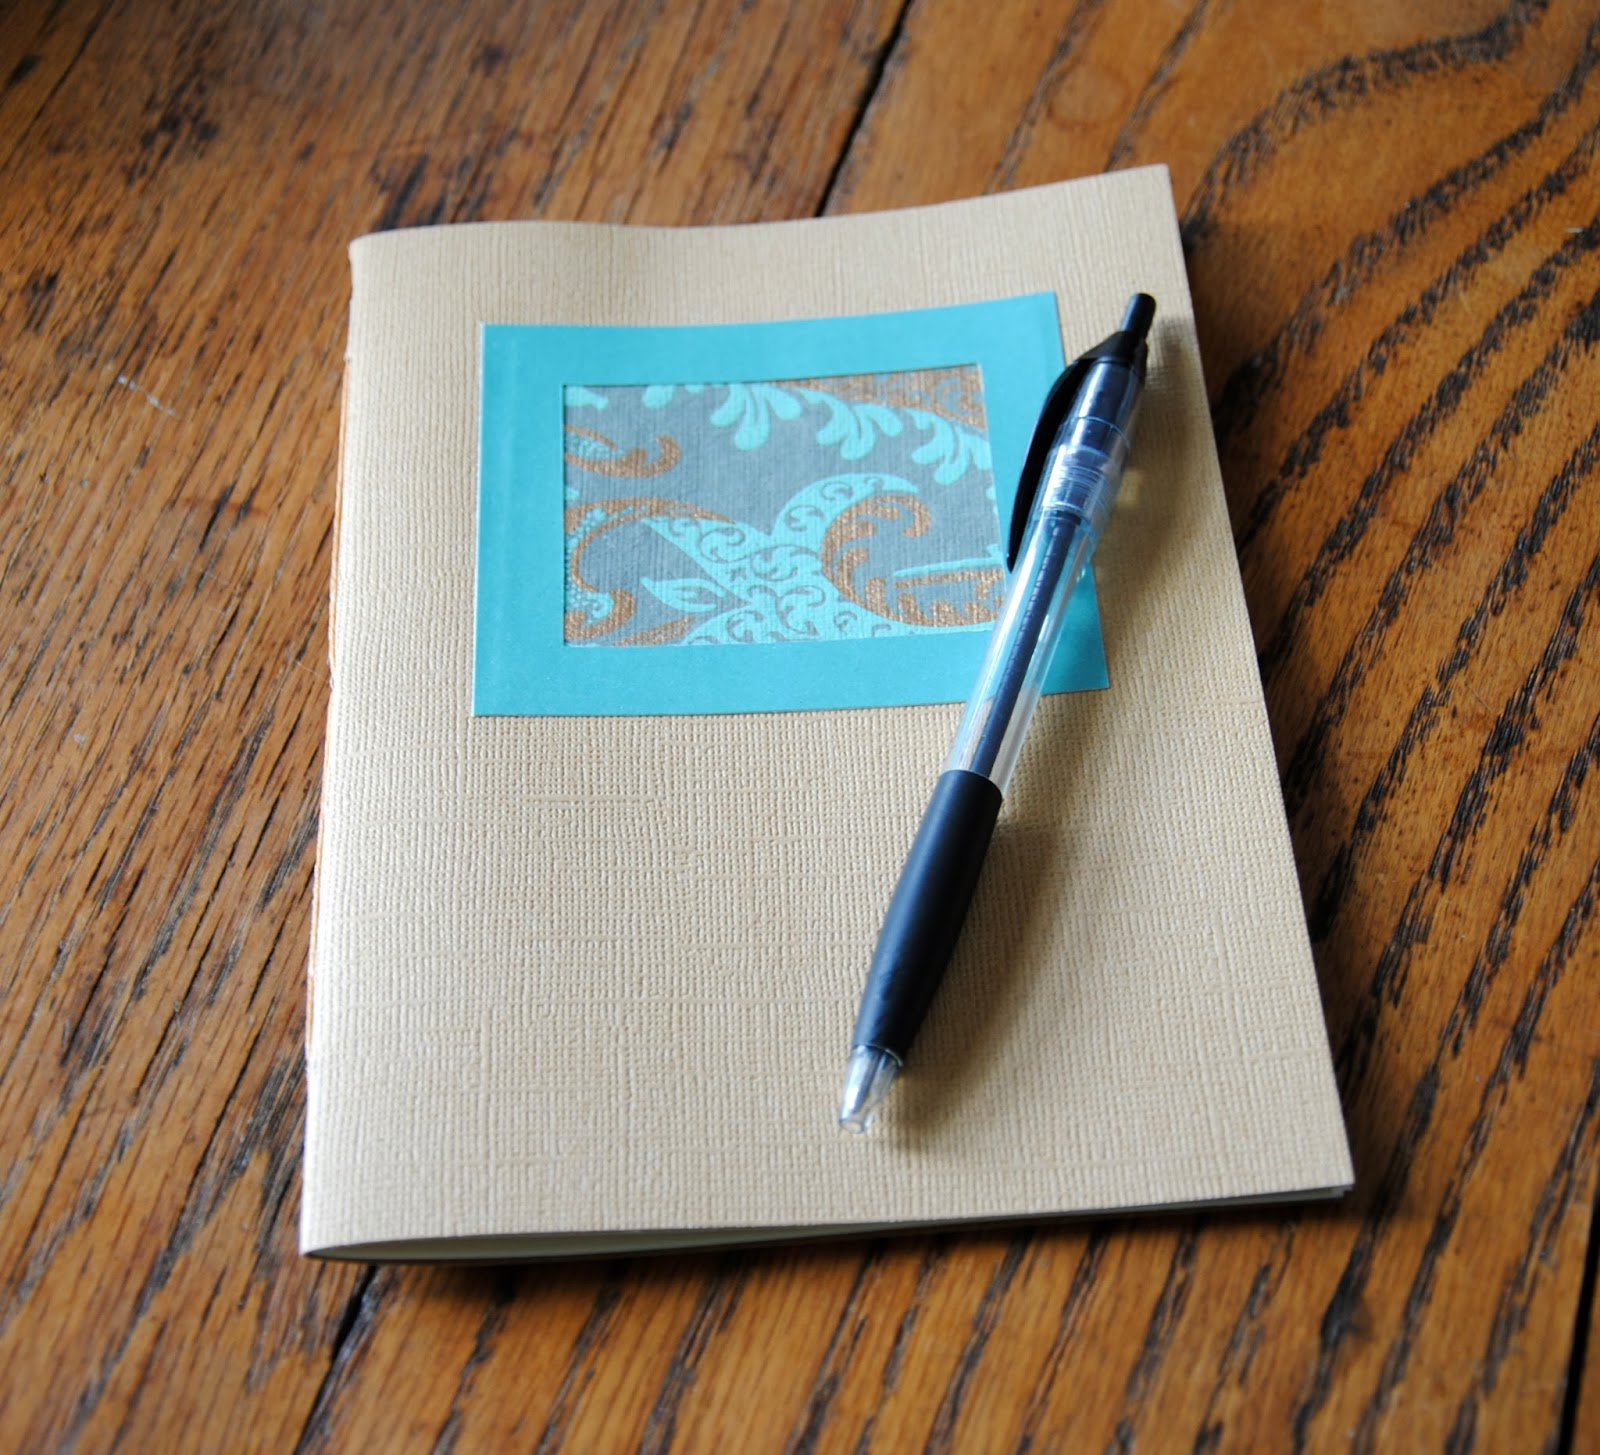 https://www.etsy.com/listing/181590310/lined-notebook-5x7-in-tan-and-aqua?ref=listing-shop-header-1